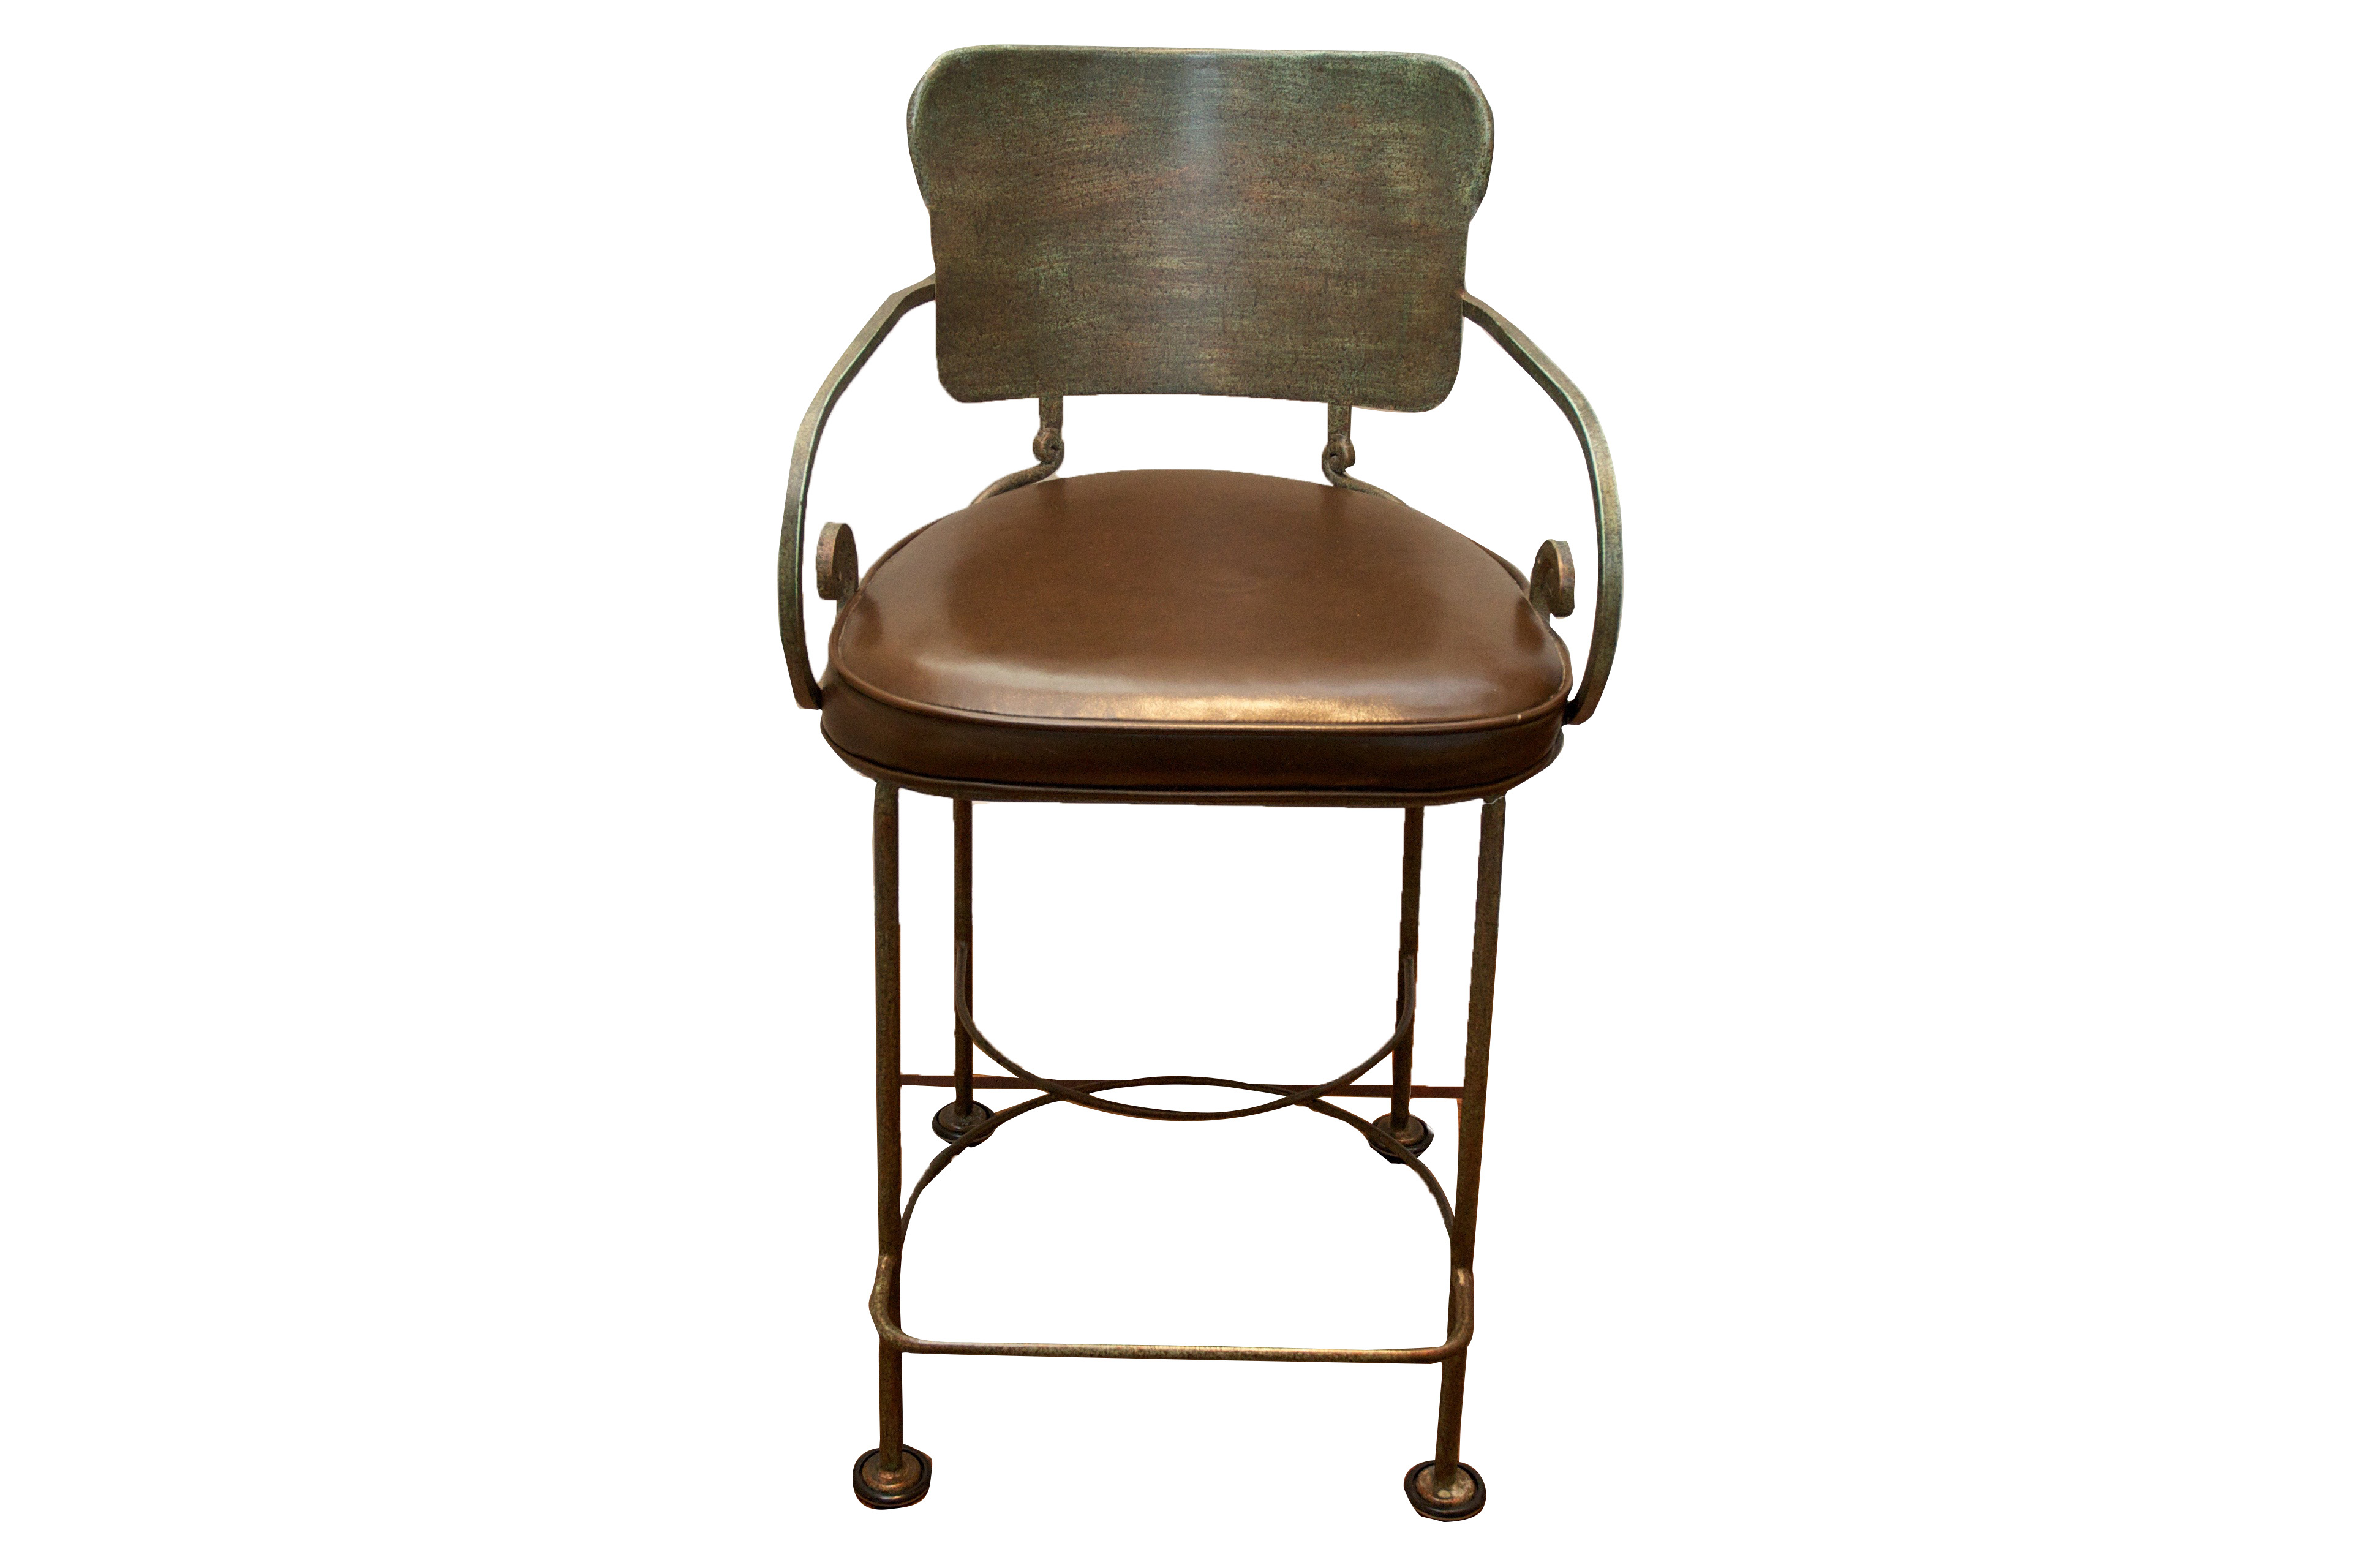 Wrought Iron Counter Stool With Leather Seat Chairish